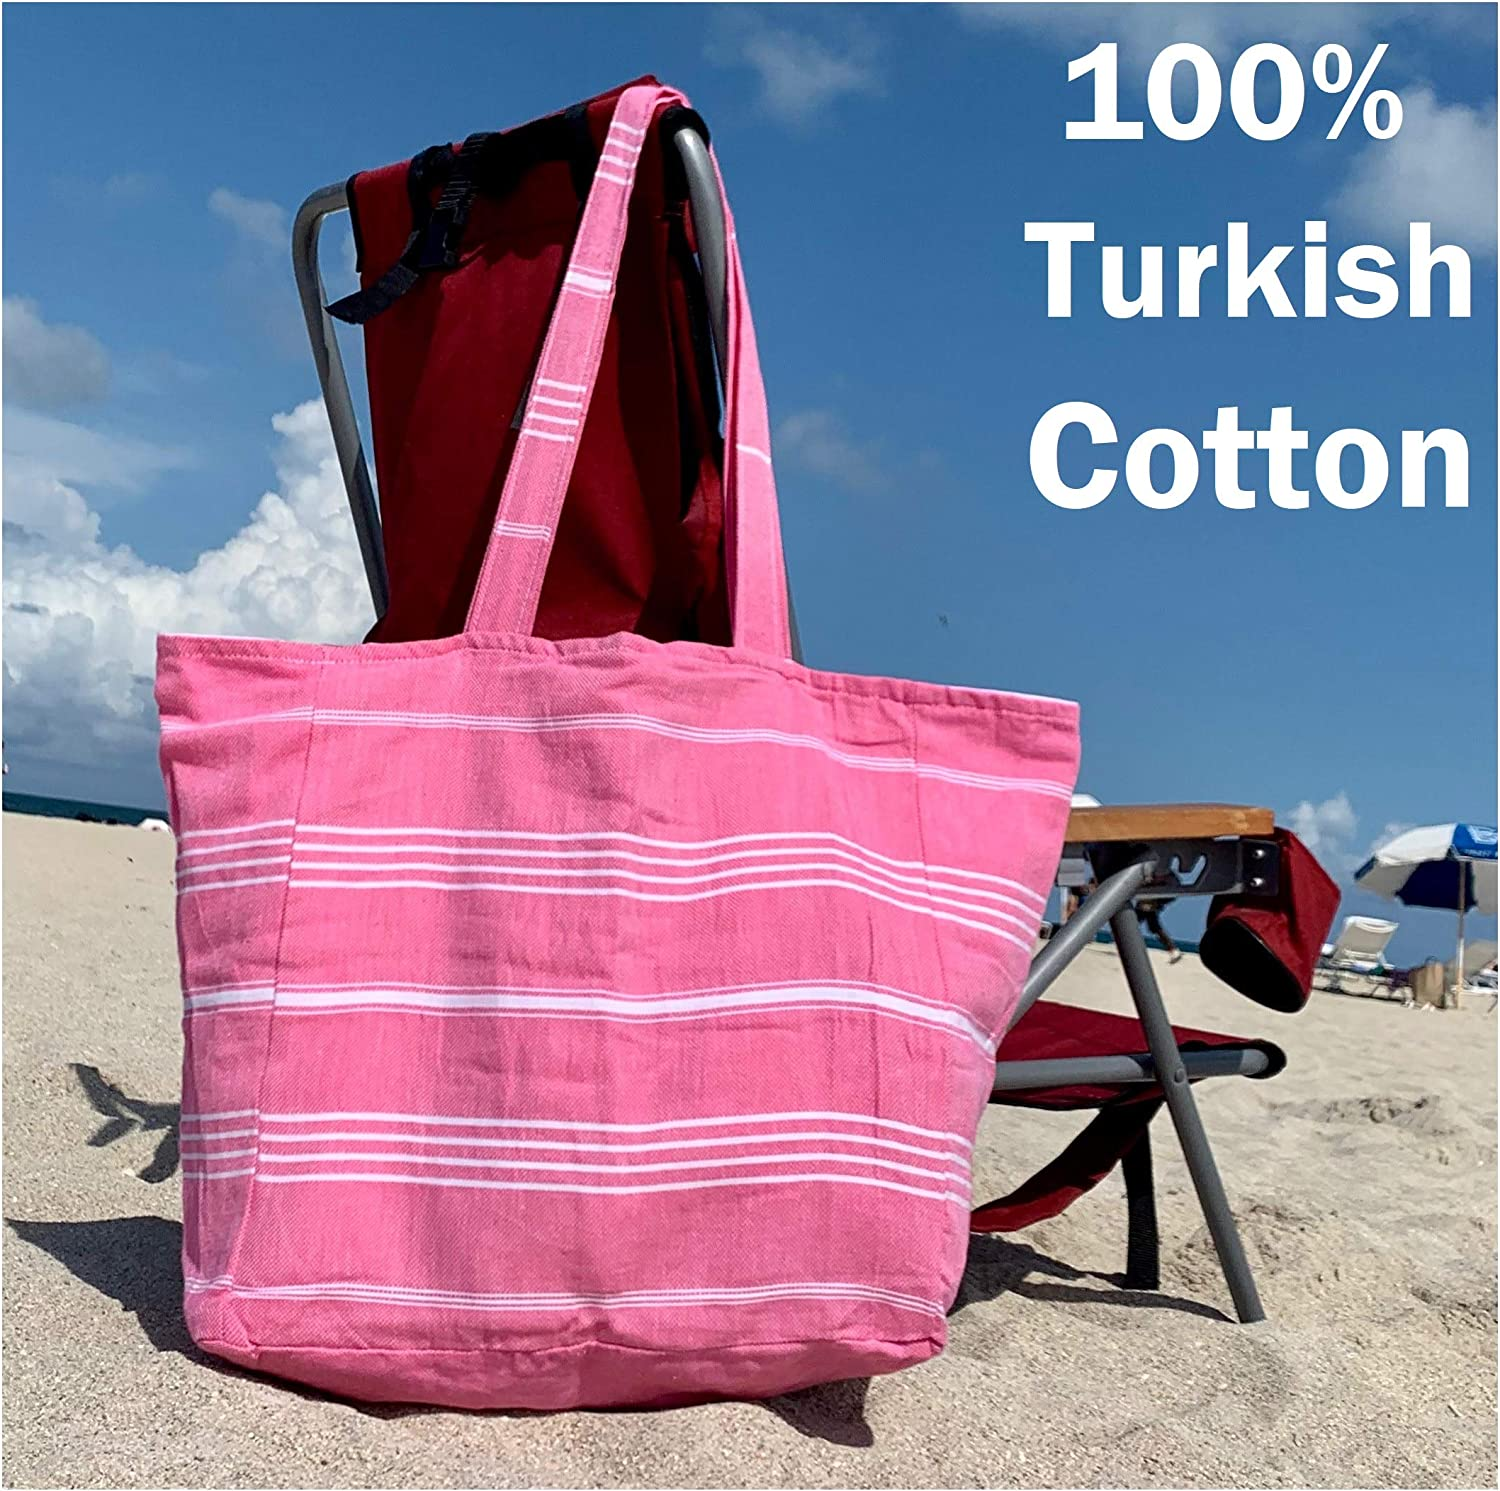 Luxury Lined Tote Beach Bag 100/% Soft Turkish Cotton w// Interior Liner Zippered Pouch Womens Shoulder Mush Travel Bag w// Snap Closure Buttons Extra Large Yoga Sports 20x18 XL Pink